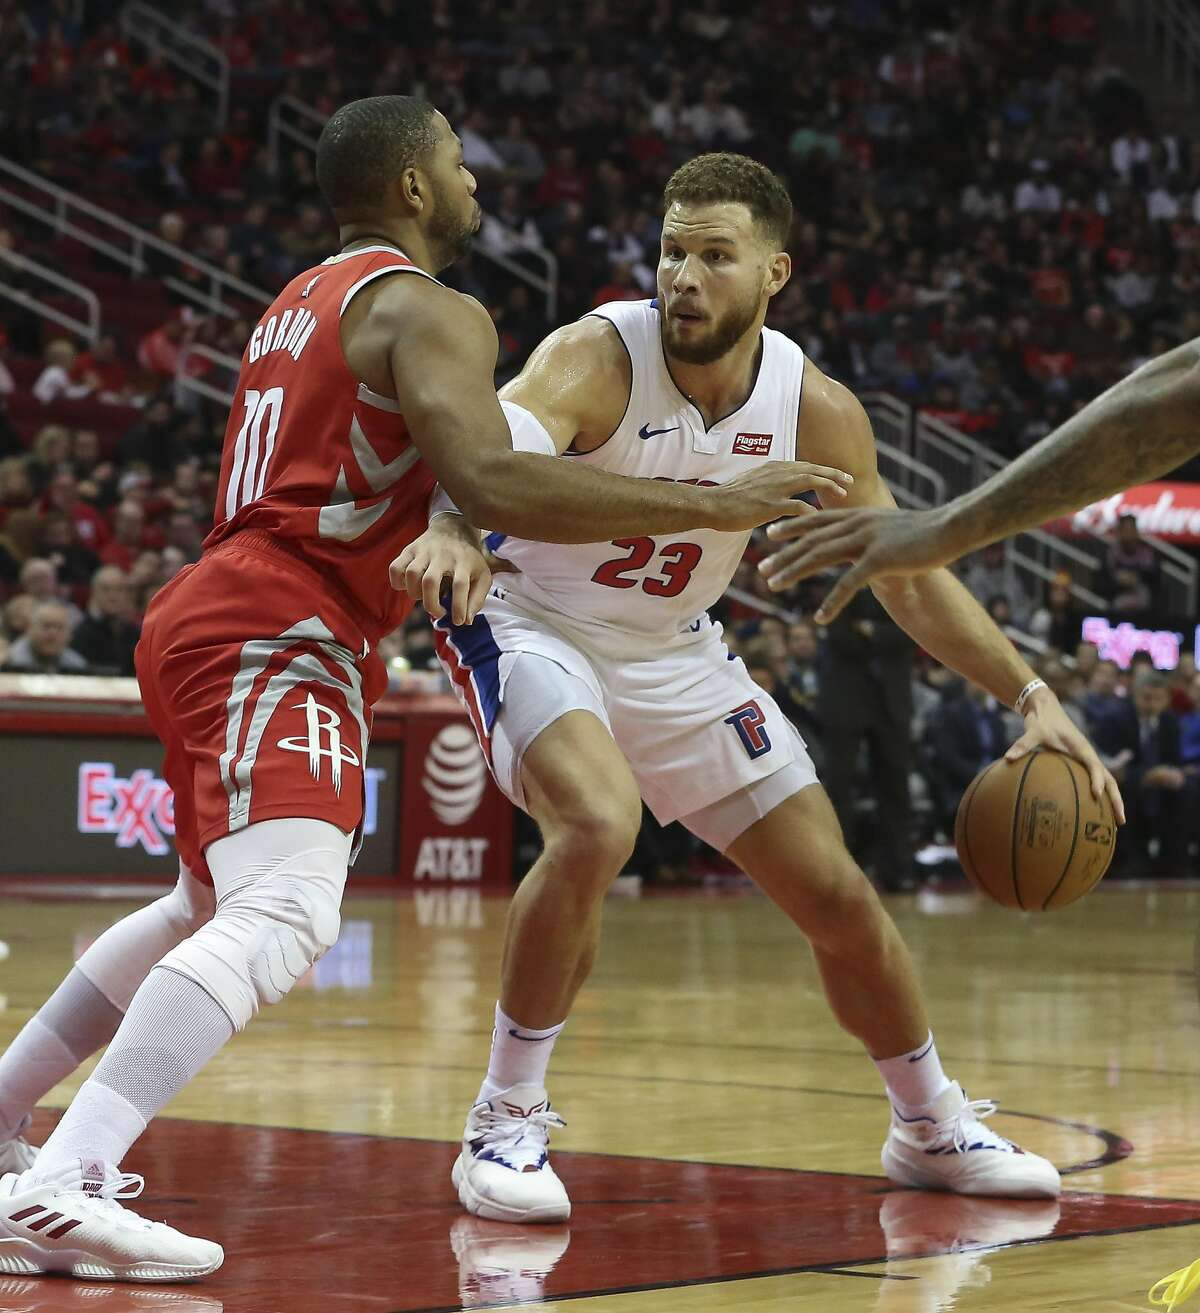 12. (tie) Detroit Pistons Record: 34-33 Place in Eastern Conference standings (as of 3/14/19): 7th NBA title odds: 300 to 1 Eastern Conference title odds: 100 to 1